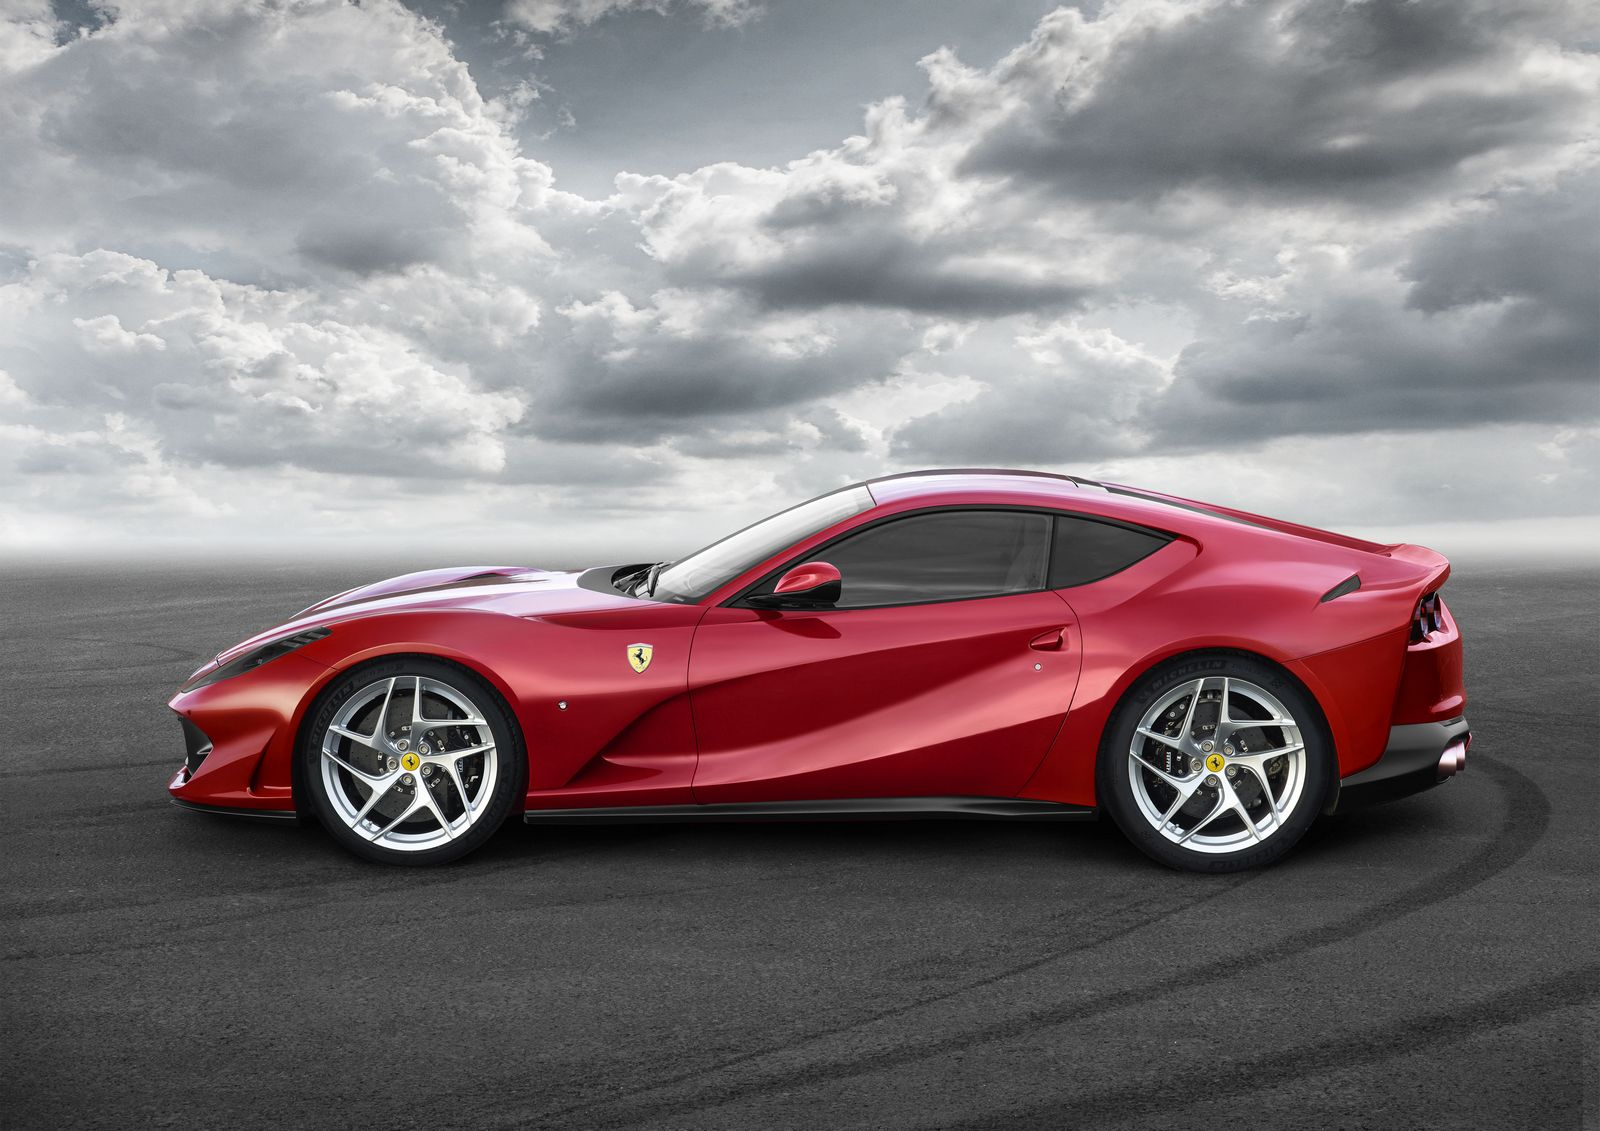 ferrari-812-monza-teased-expected-with-250-testa-rossa-style-pontoon-fenders_3